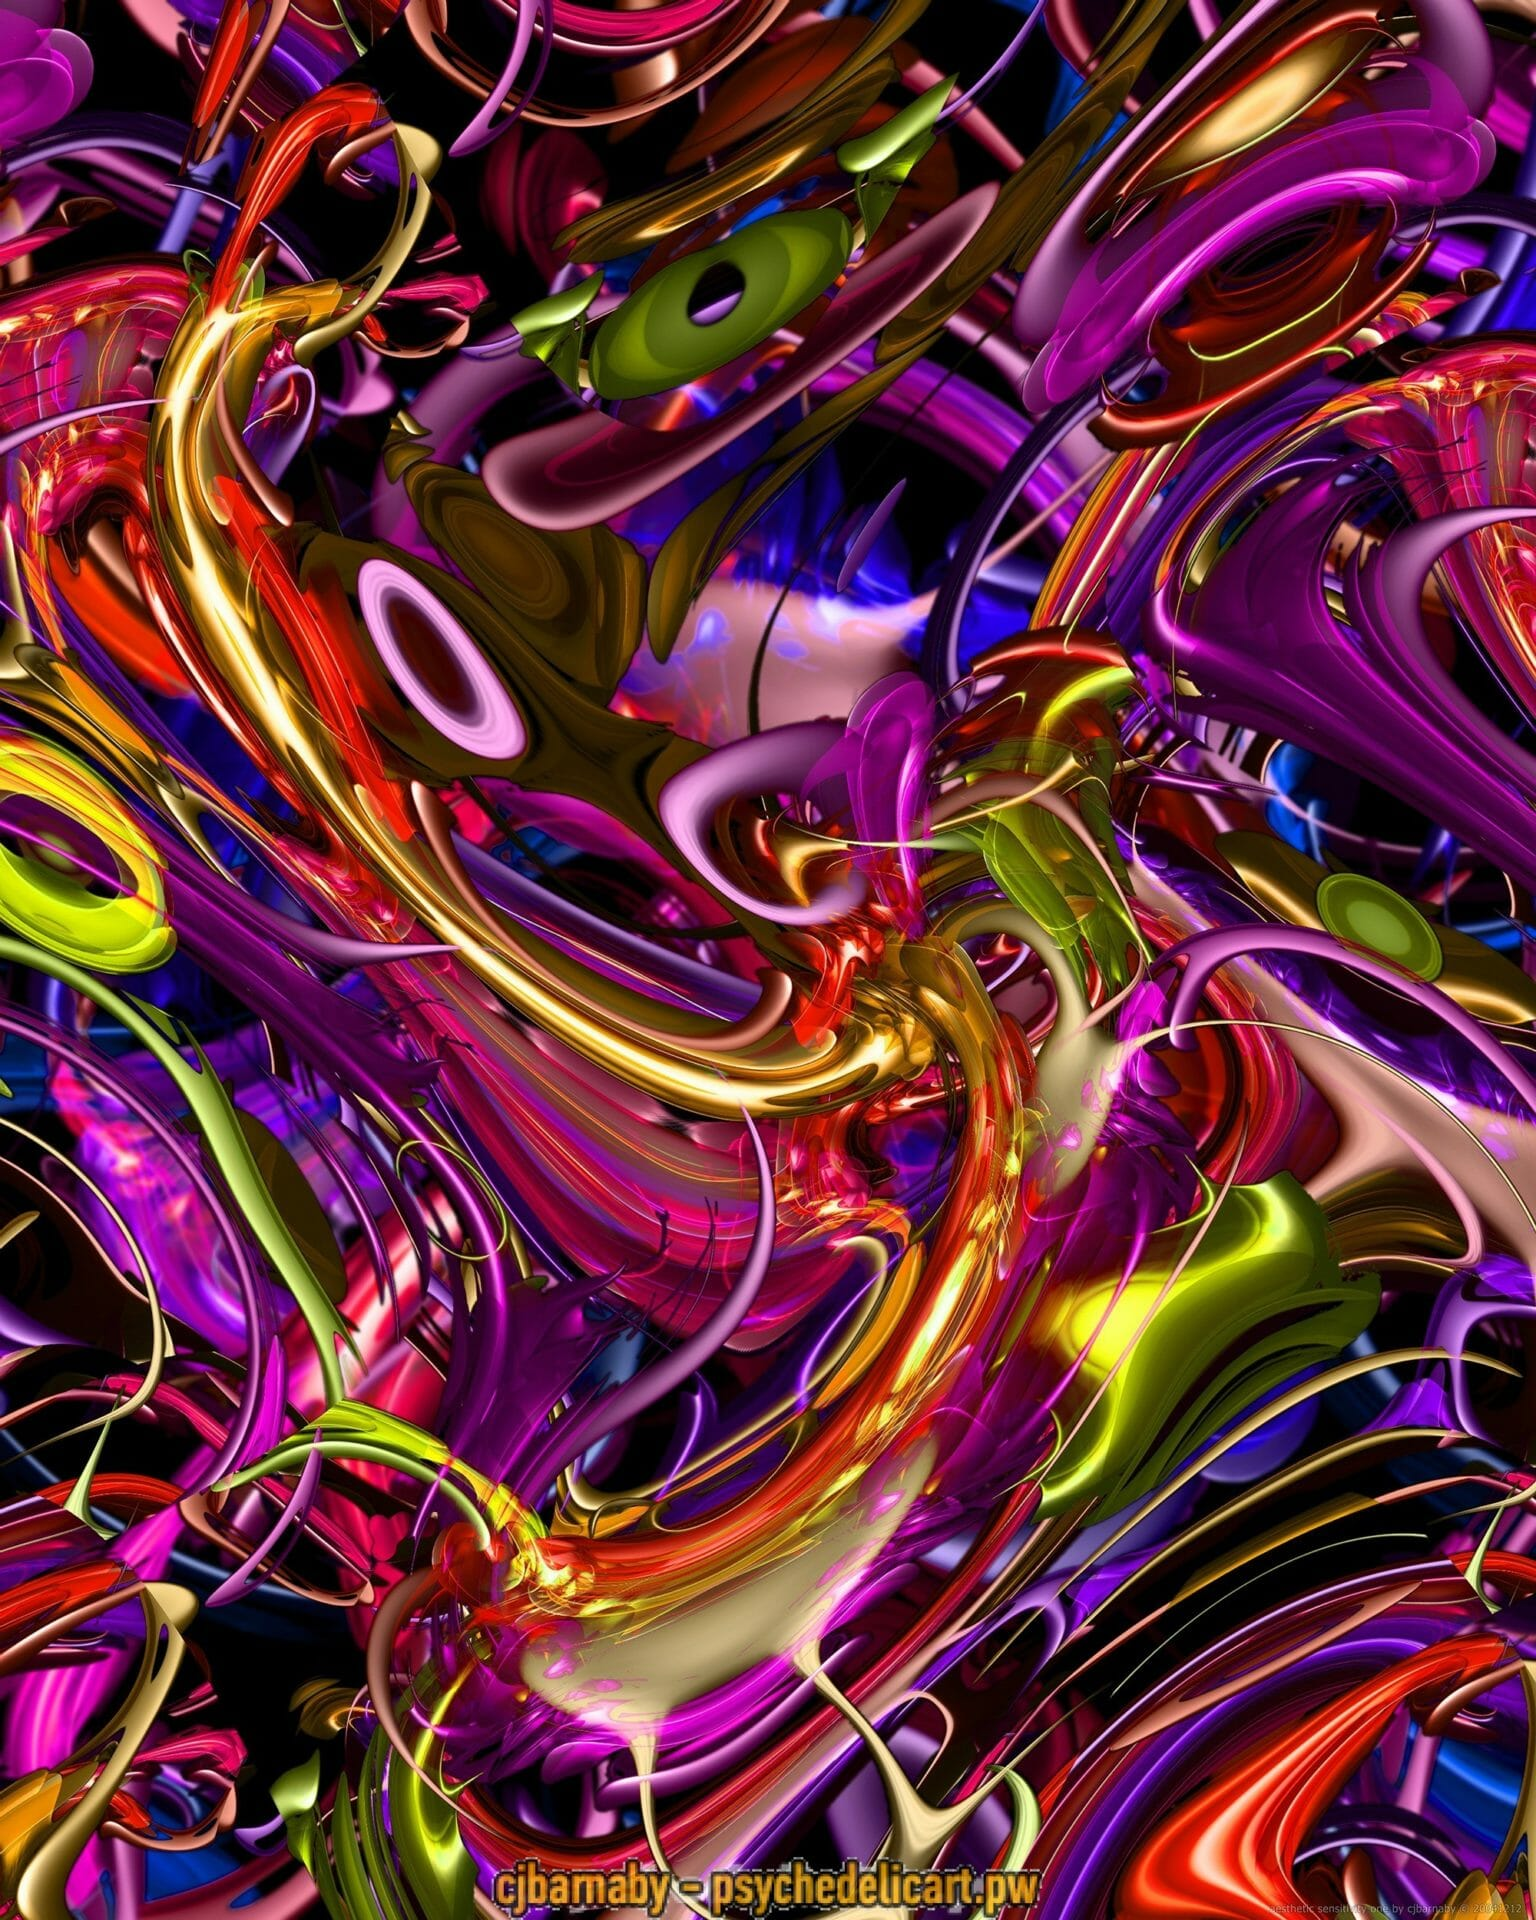 psychedelic art http://psychedelicart.pw/wp-content/uploads/Aesthetic-Sensitivity-1.jpg